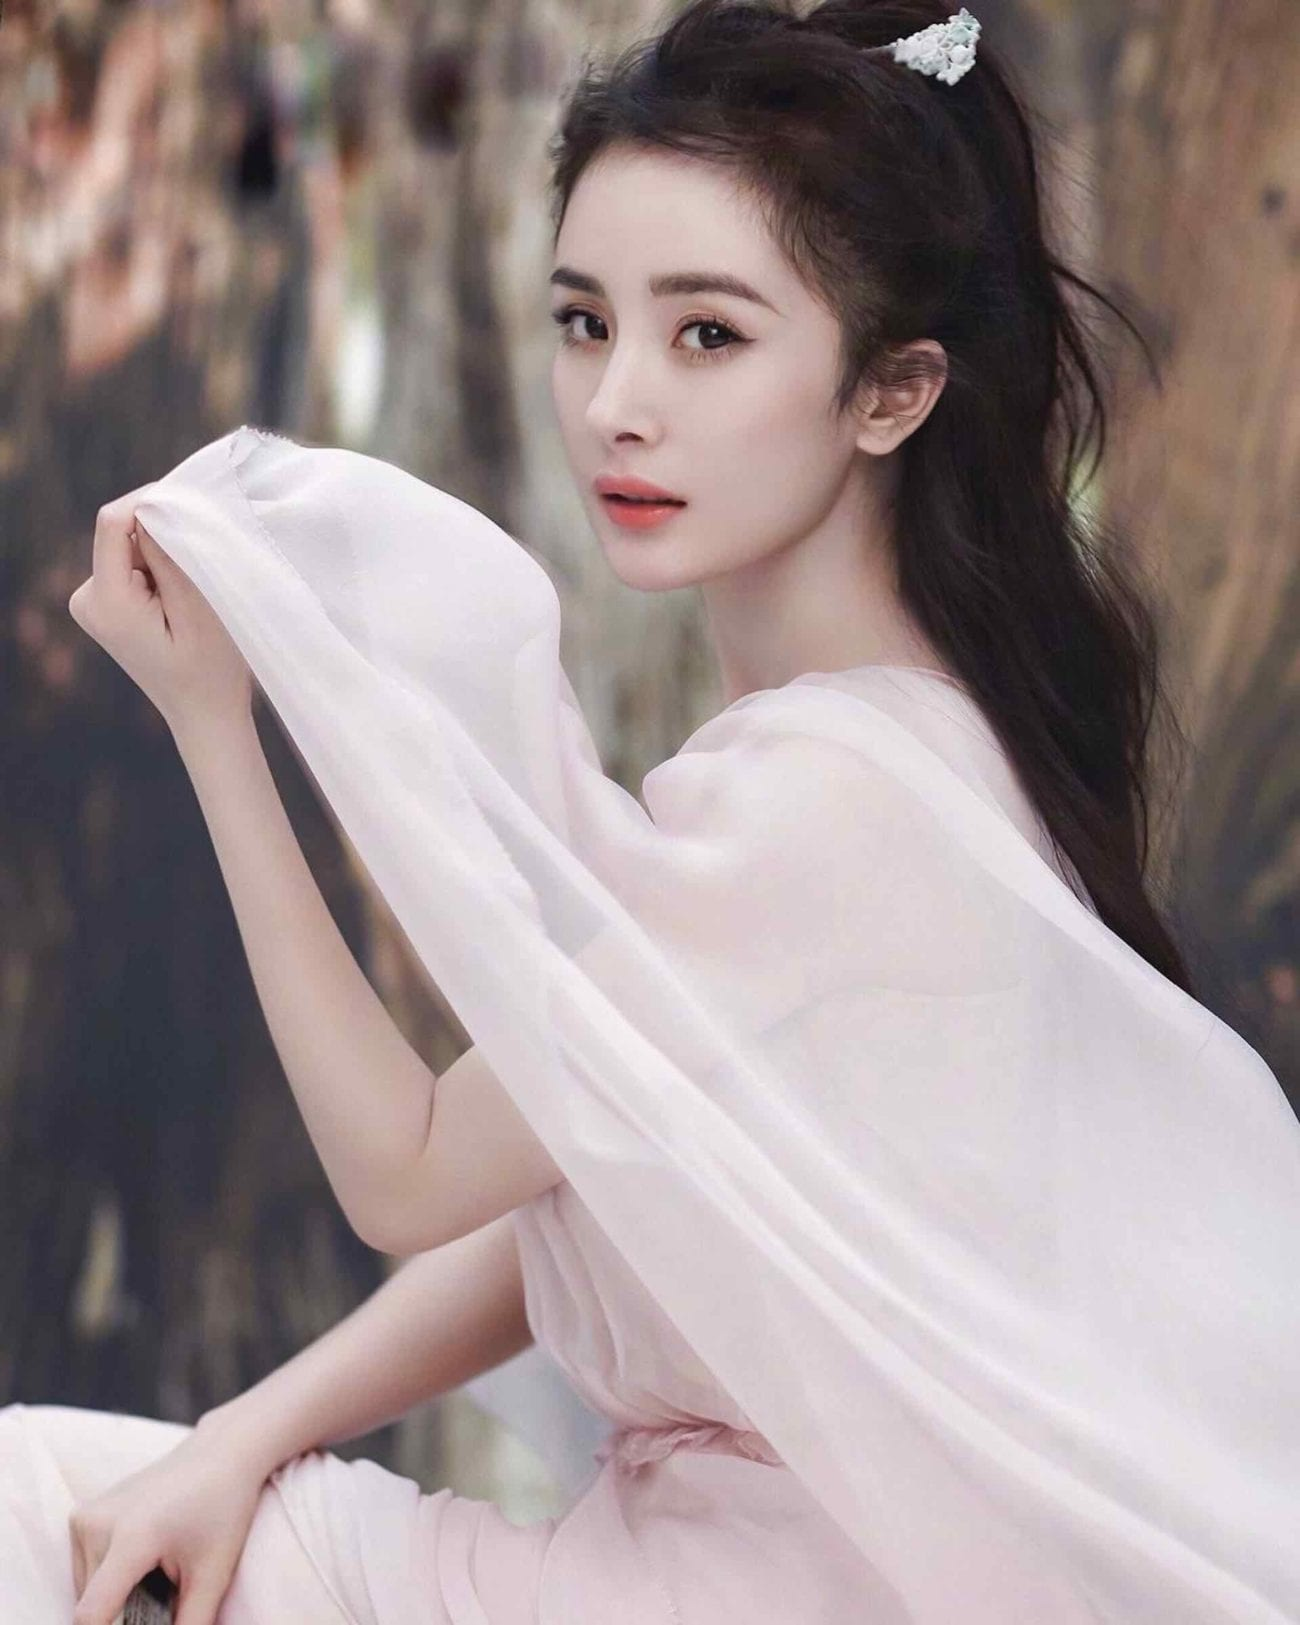 Yang Mi has been making waves in a variety of projects, but specifically in C-dramas. Here's why you need to fall in love with Yang Mi.